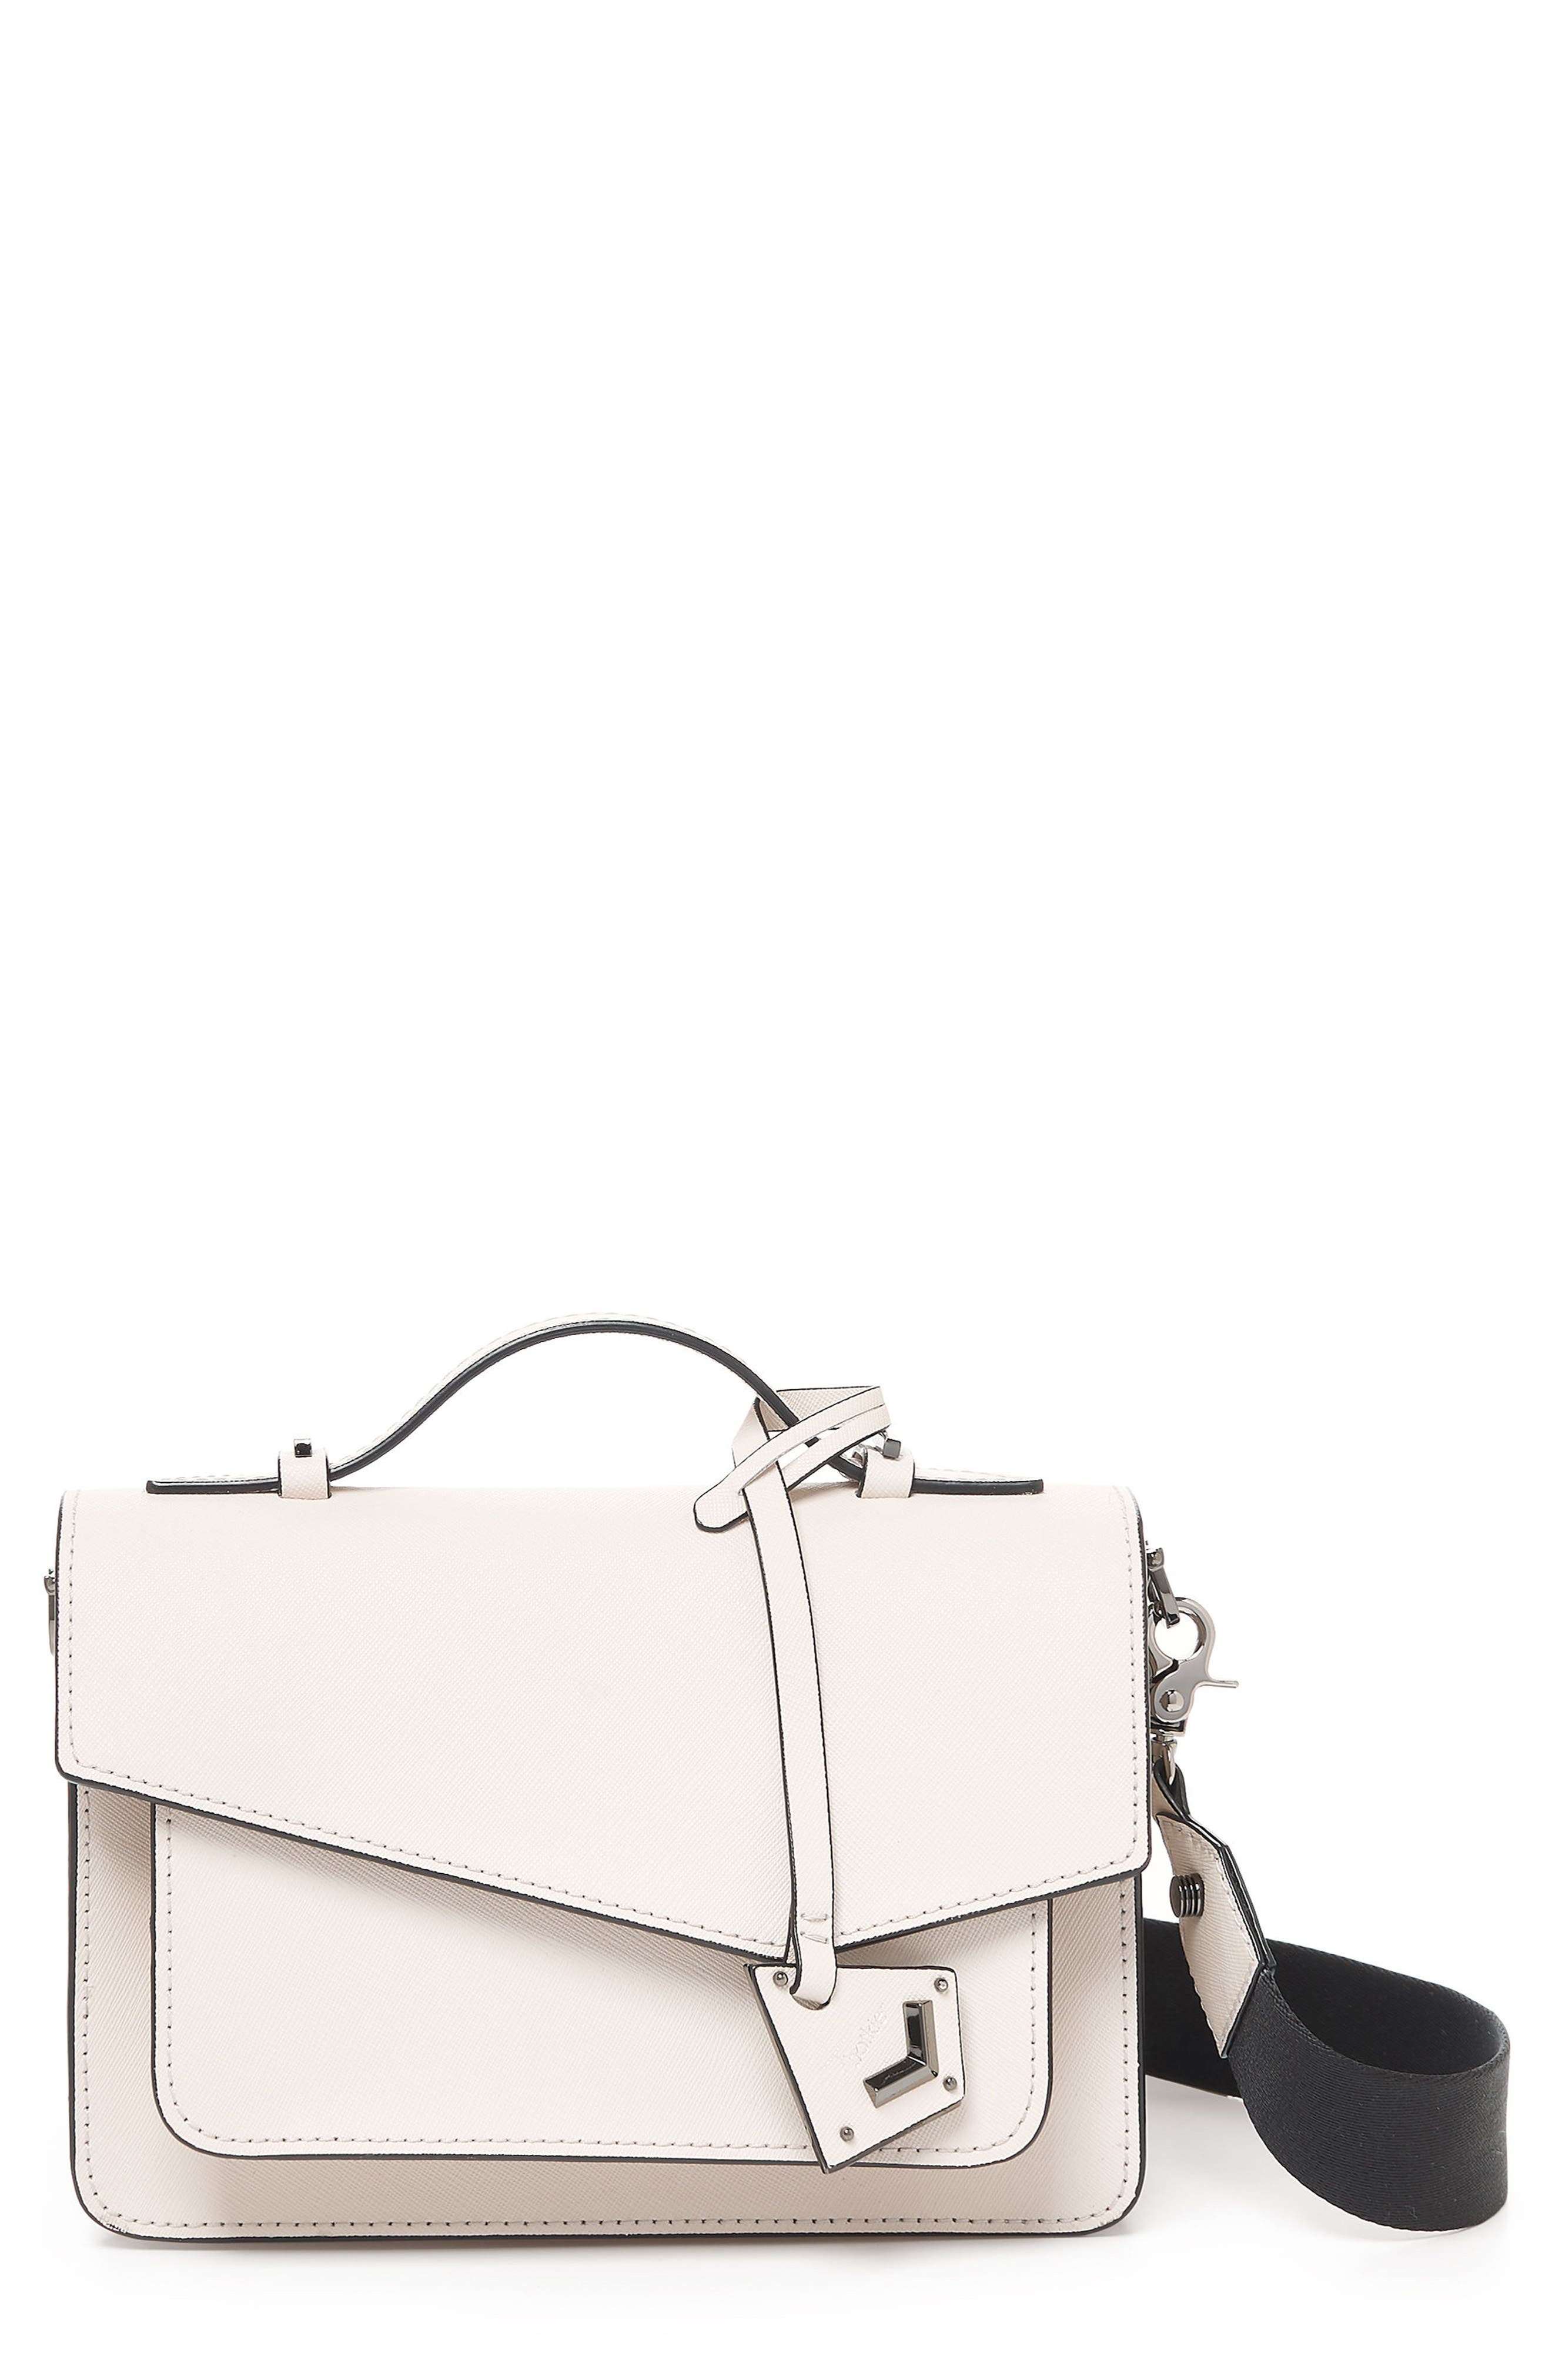 Botkier Cobble Hill Leather Crossbody Bag